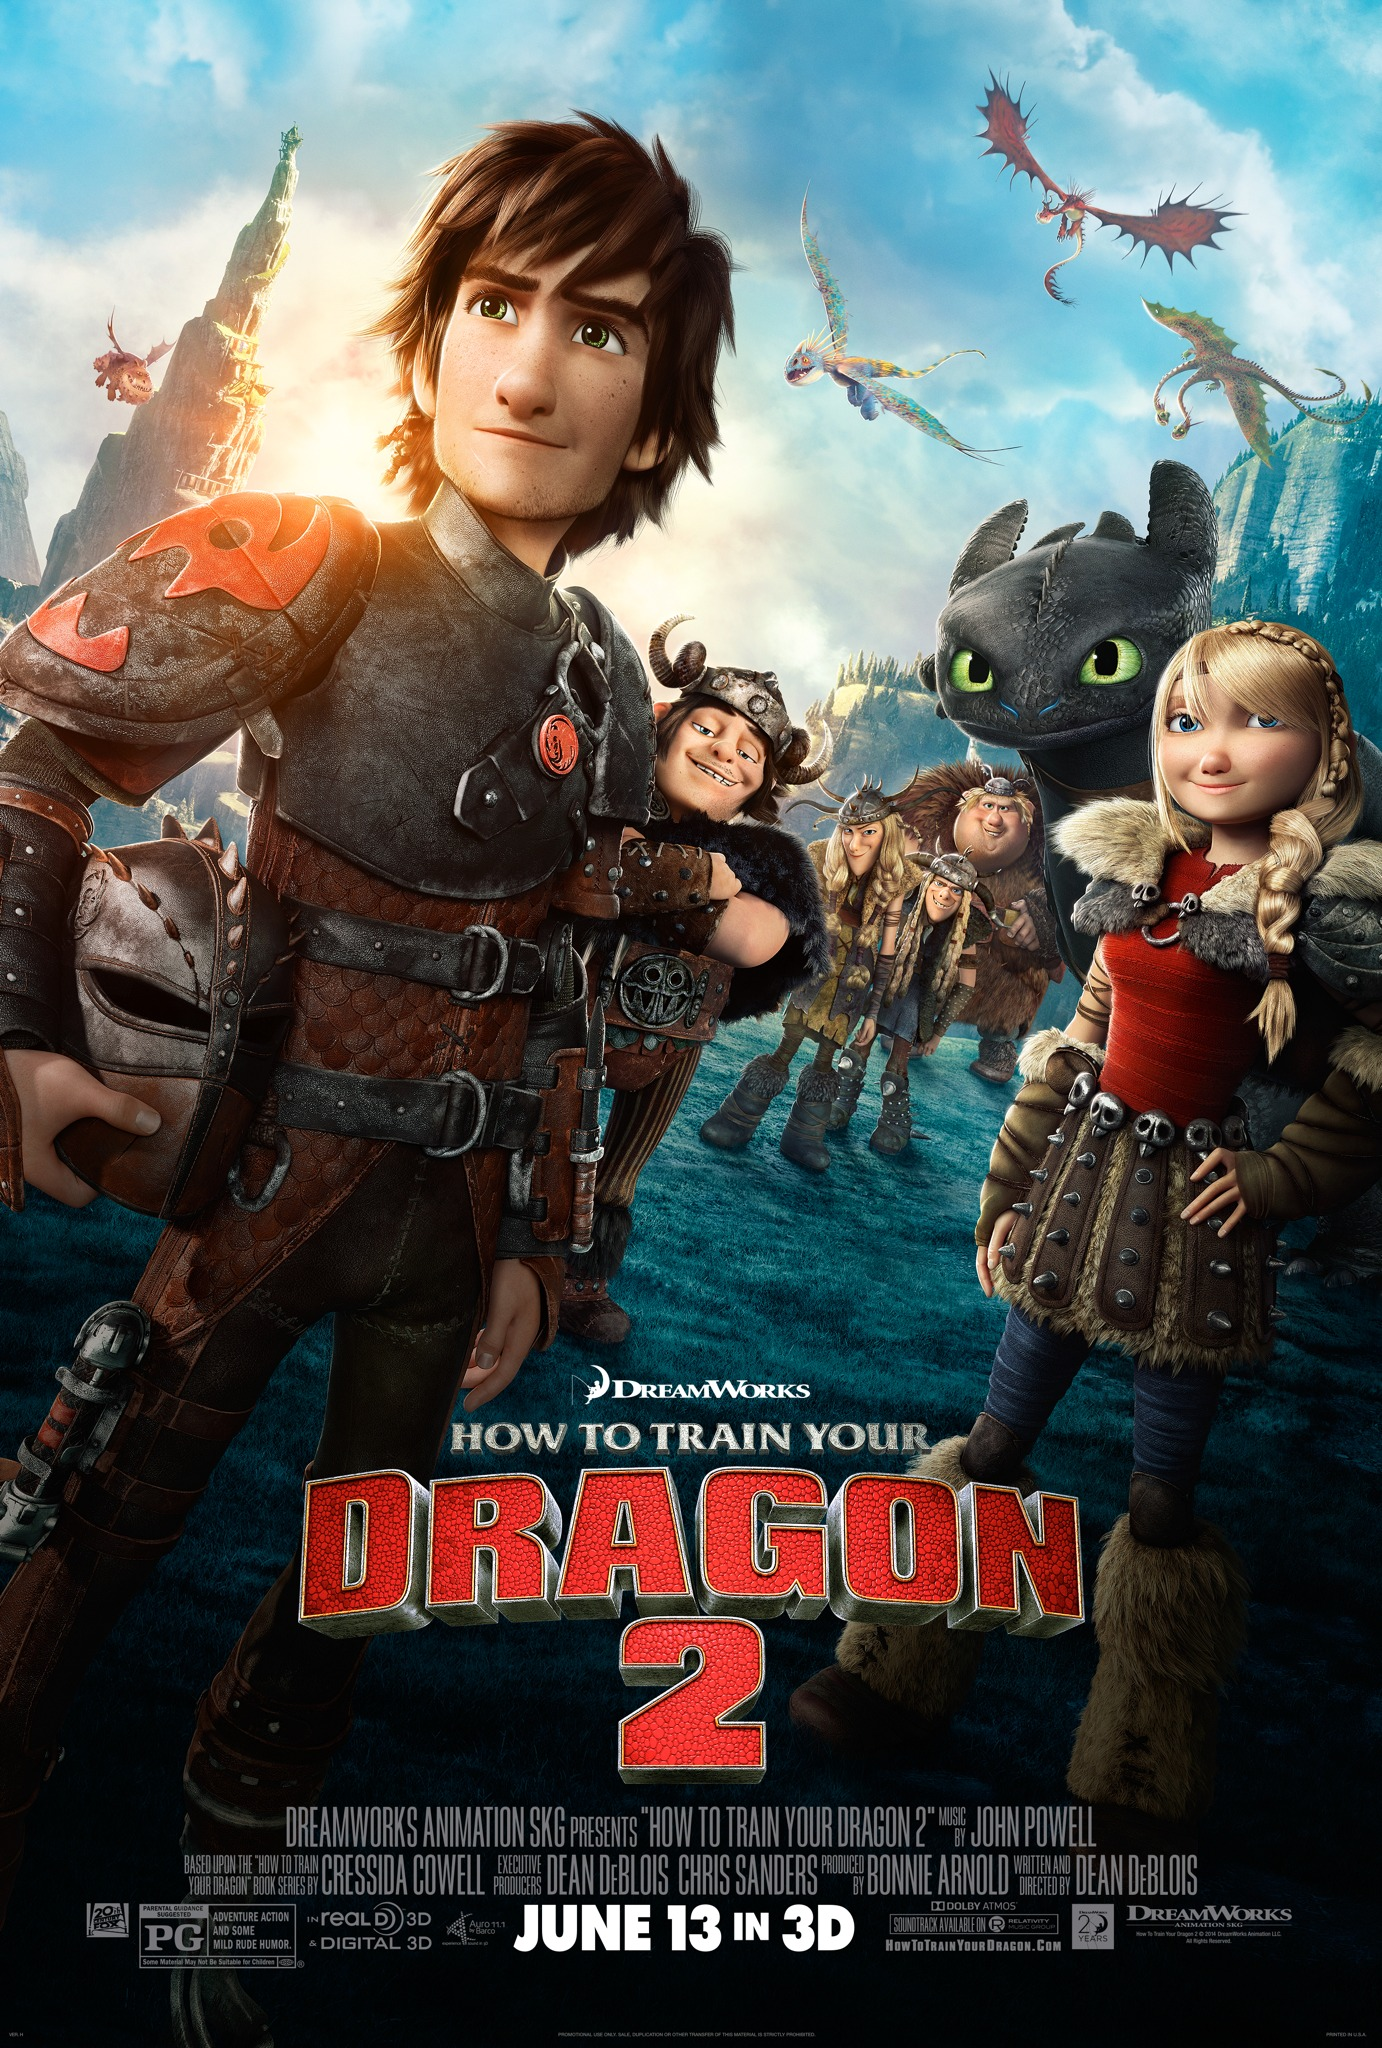 how to train your dragon 2 - hd-trailers (hdtn)